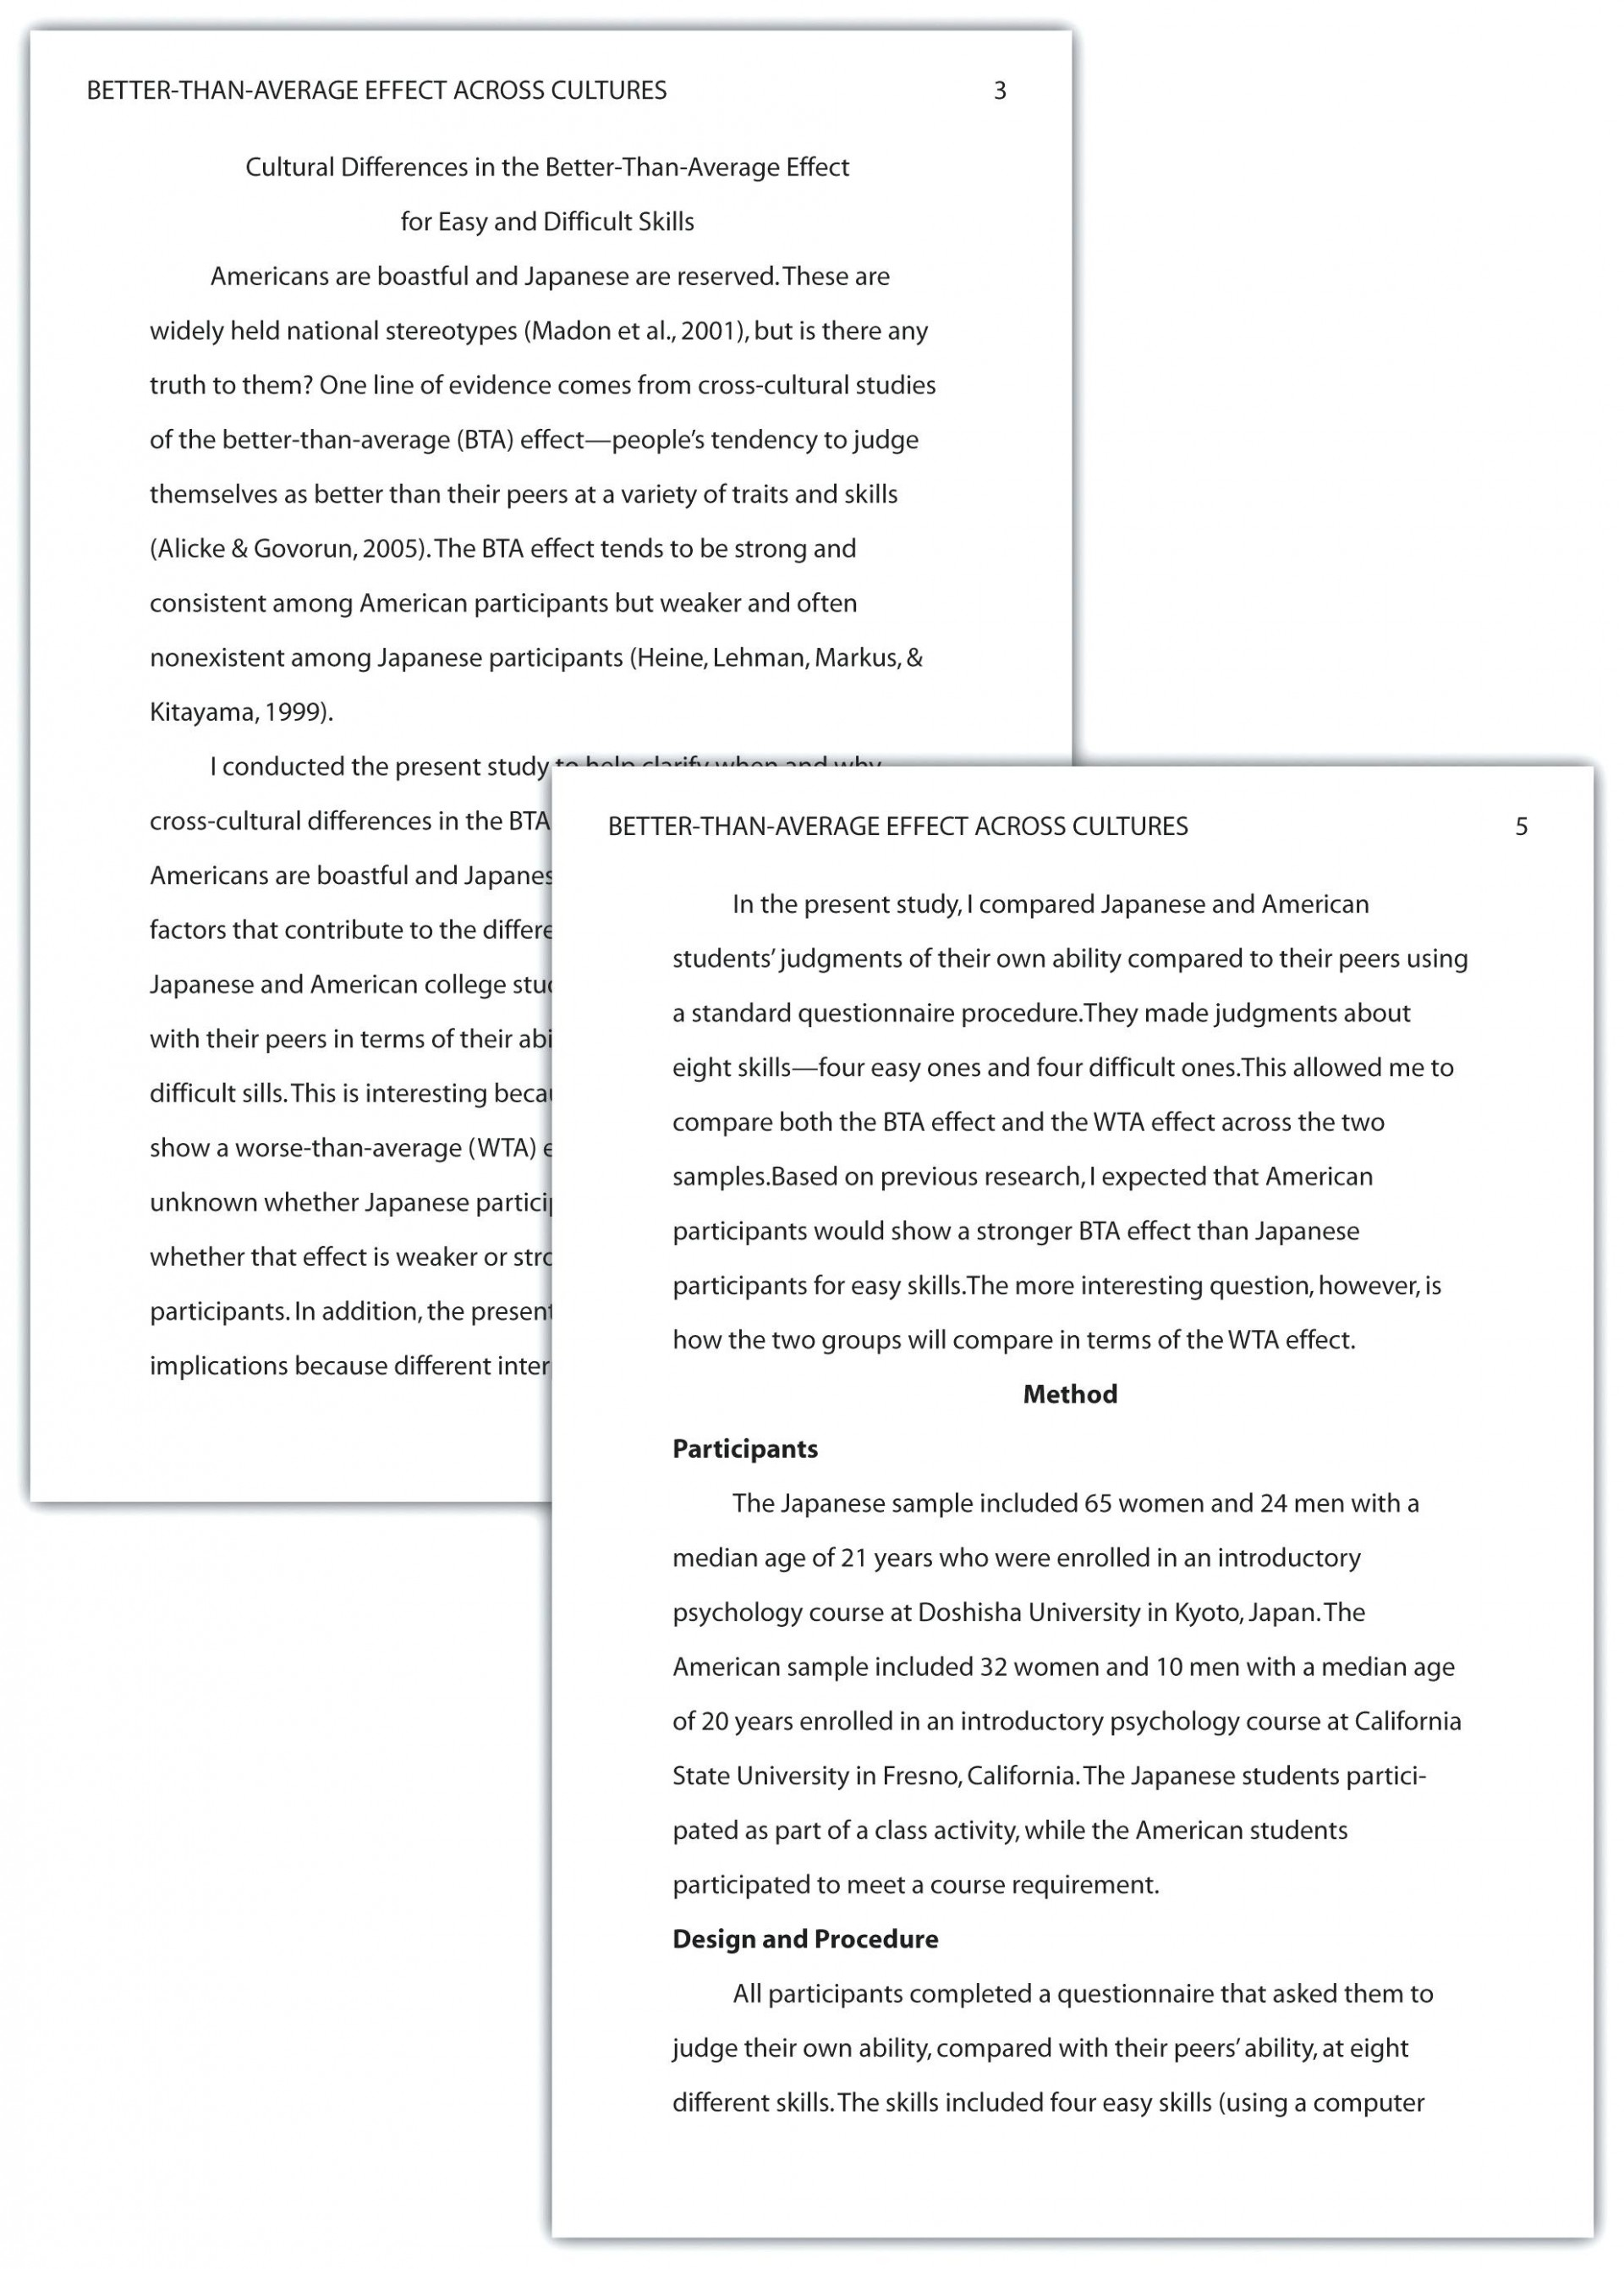 016 Essay Example Asa Paper Format Template Narrative Sample Papers Cause And Effect Also Price Research In Chinese Remarkable Reference Generator Heading Citation 1920